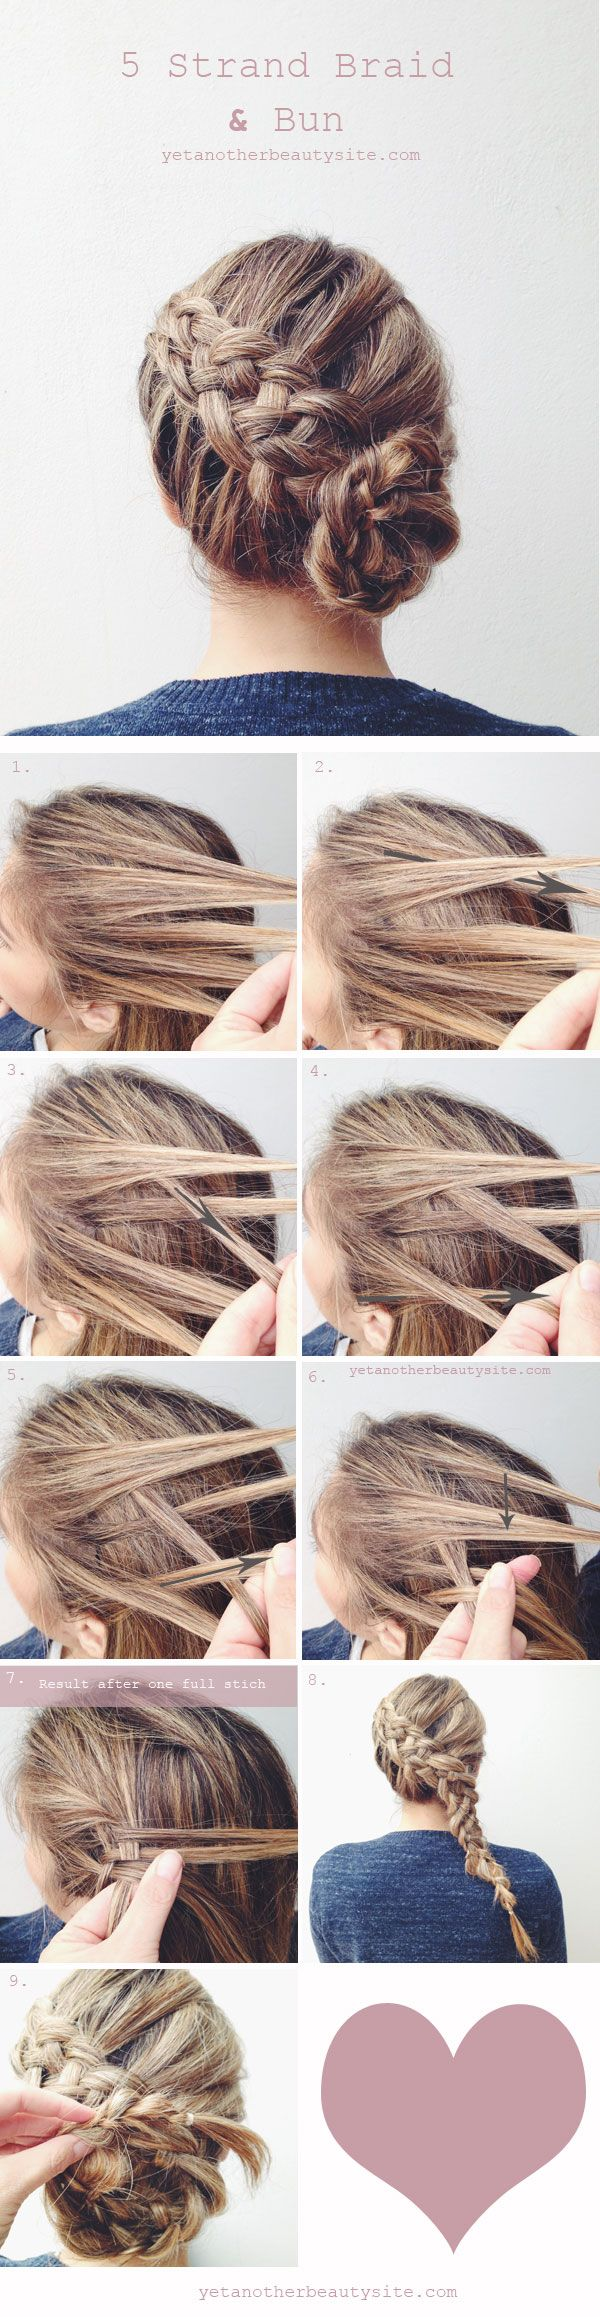 diy wedding hairstyles with tutorials to try on your own